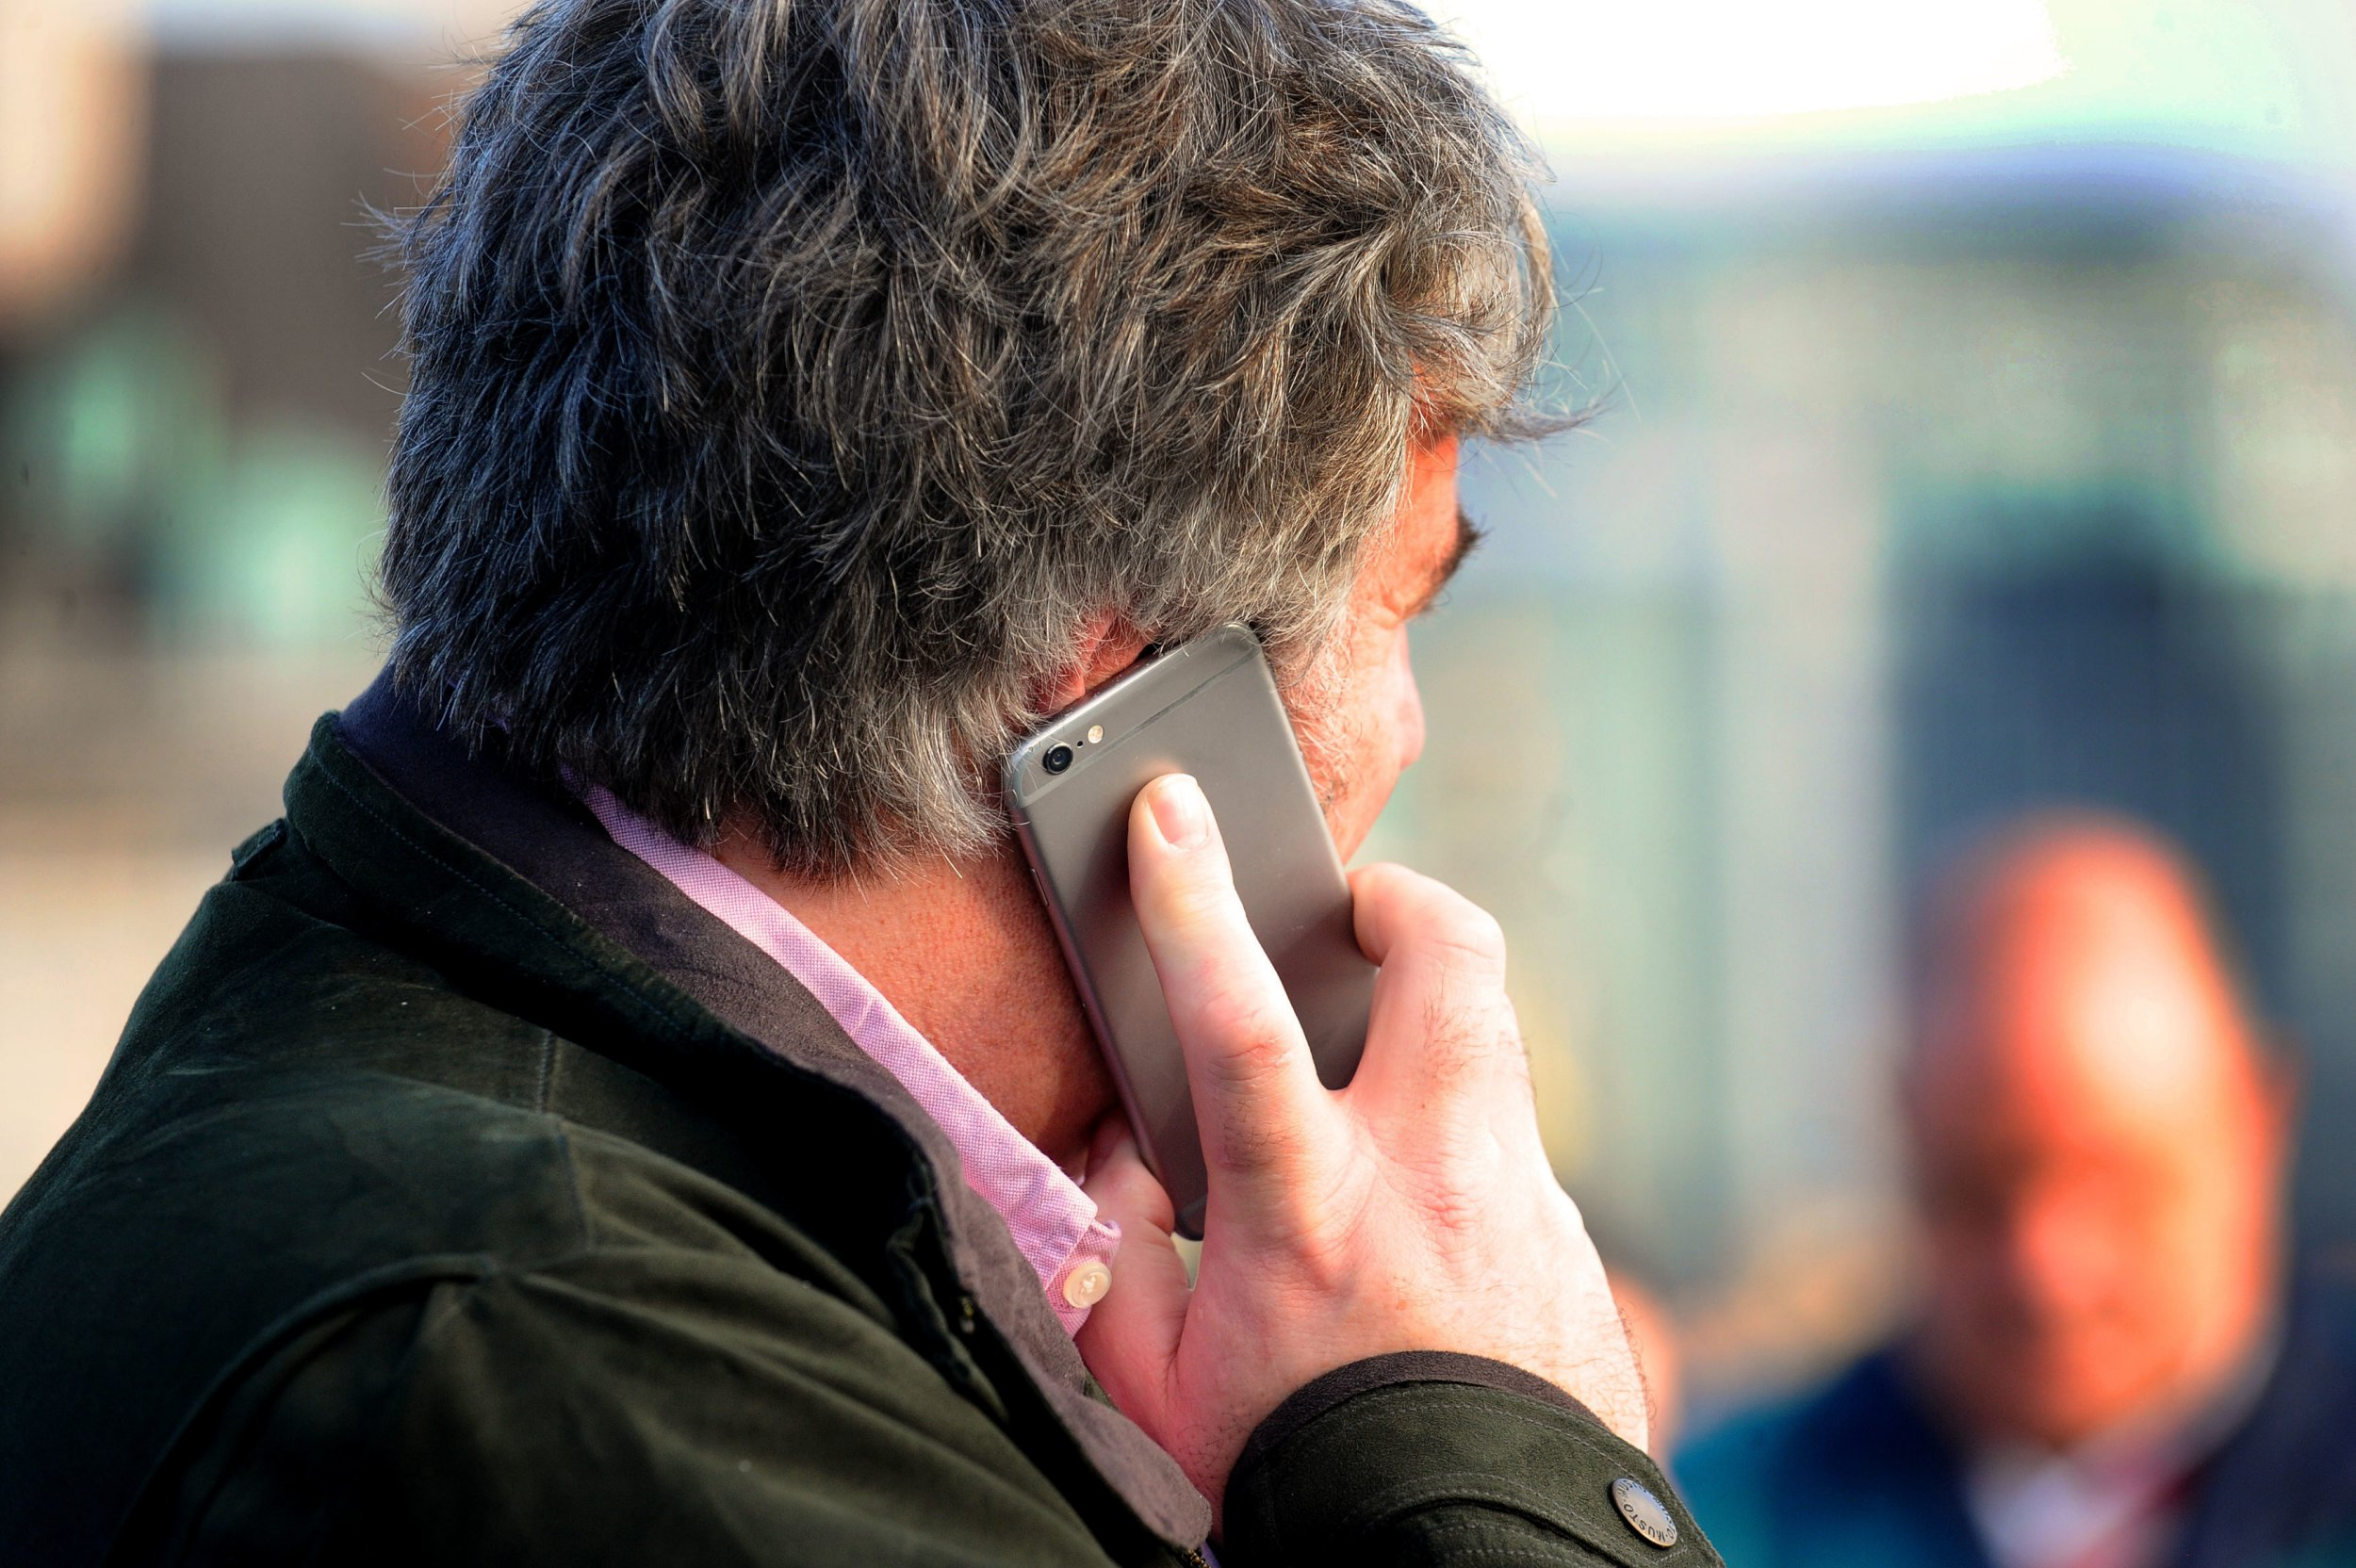 """Undated file photo of a man using a mobile phone in central London. Citizens Advice has lodged a super complaint with the competition watchdog after finding that customers who remain loyal to their utility providers are being penalised by ?4 billion a year. PRESS ASSOCIATION Photo. Issue date: Friday September 28, 2018. The national charity said the practice of overcharging loyal customers was ongoing and widespread and called on the Competition and Markets Authority (CMA) to """"act now to stop people being exploited"""". Research by Citizens Advice found that British consumers are losing ?4.1 billion a year across the five essential mobile, broadband, home insurance, mortgages and savings markets to the """"loyalty penalty"""", with eight in 10 people paying a significantly higher price to at least one of their providers for remaining with them. See PA story CONSUMER Loyalty. Photo credit should read: Lauren Hurley/PA Wire"""